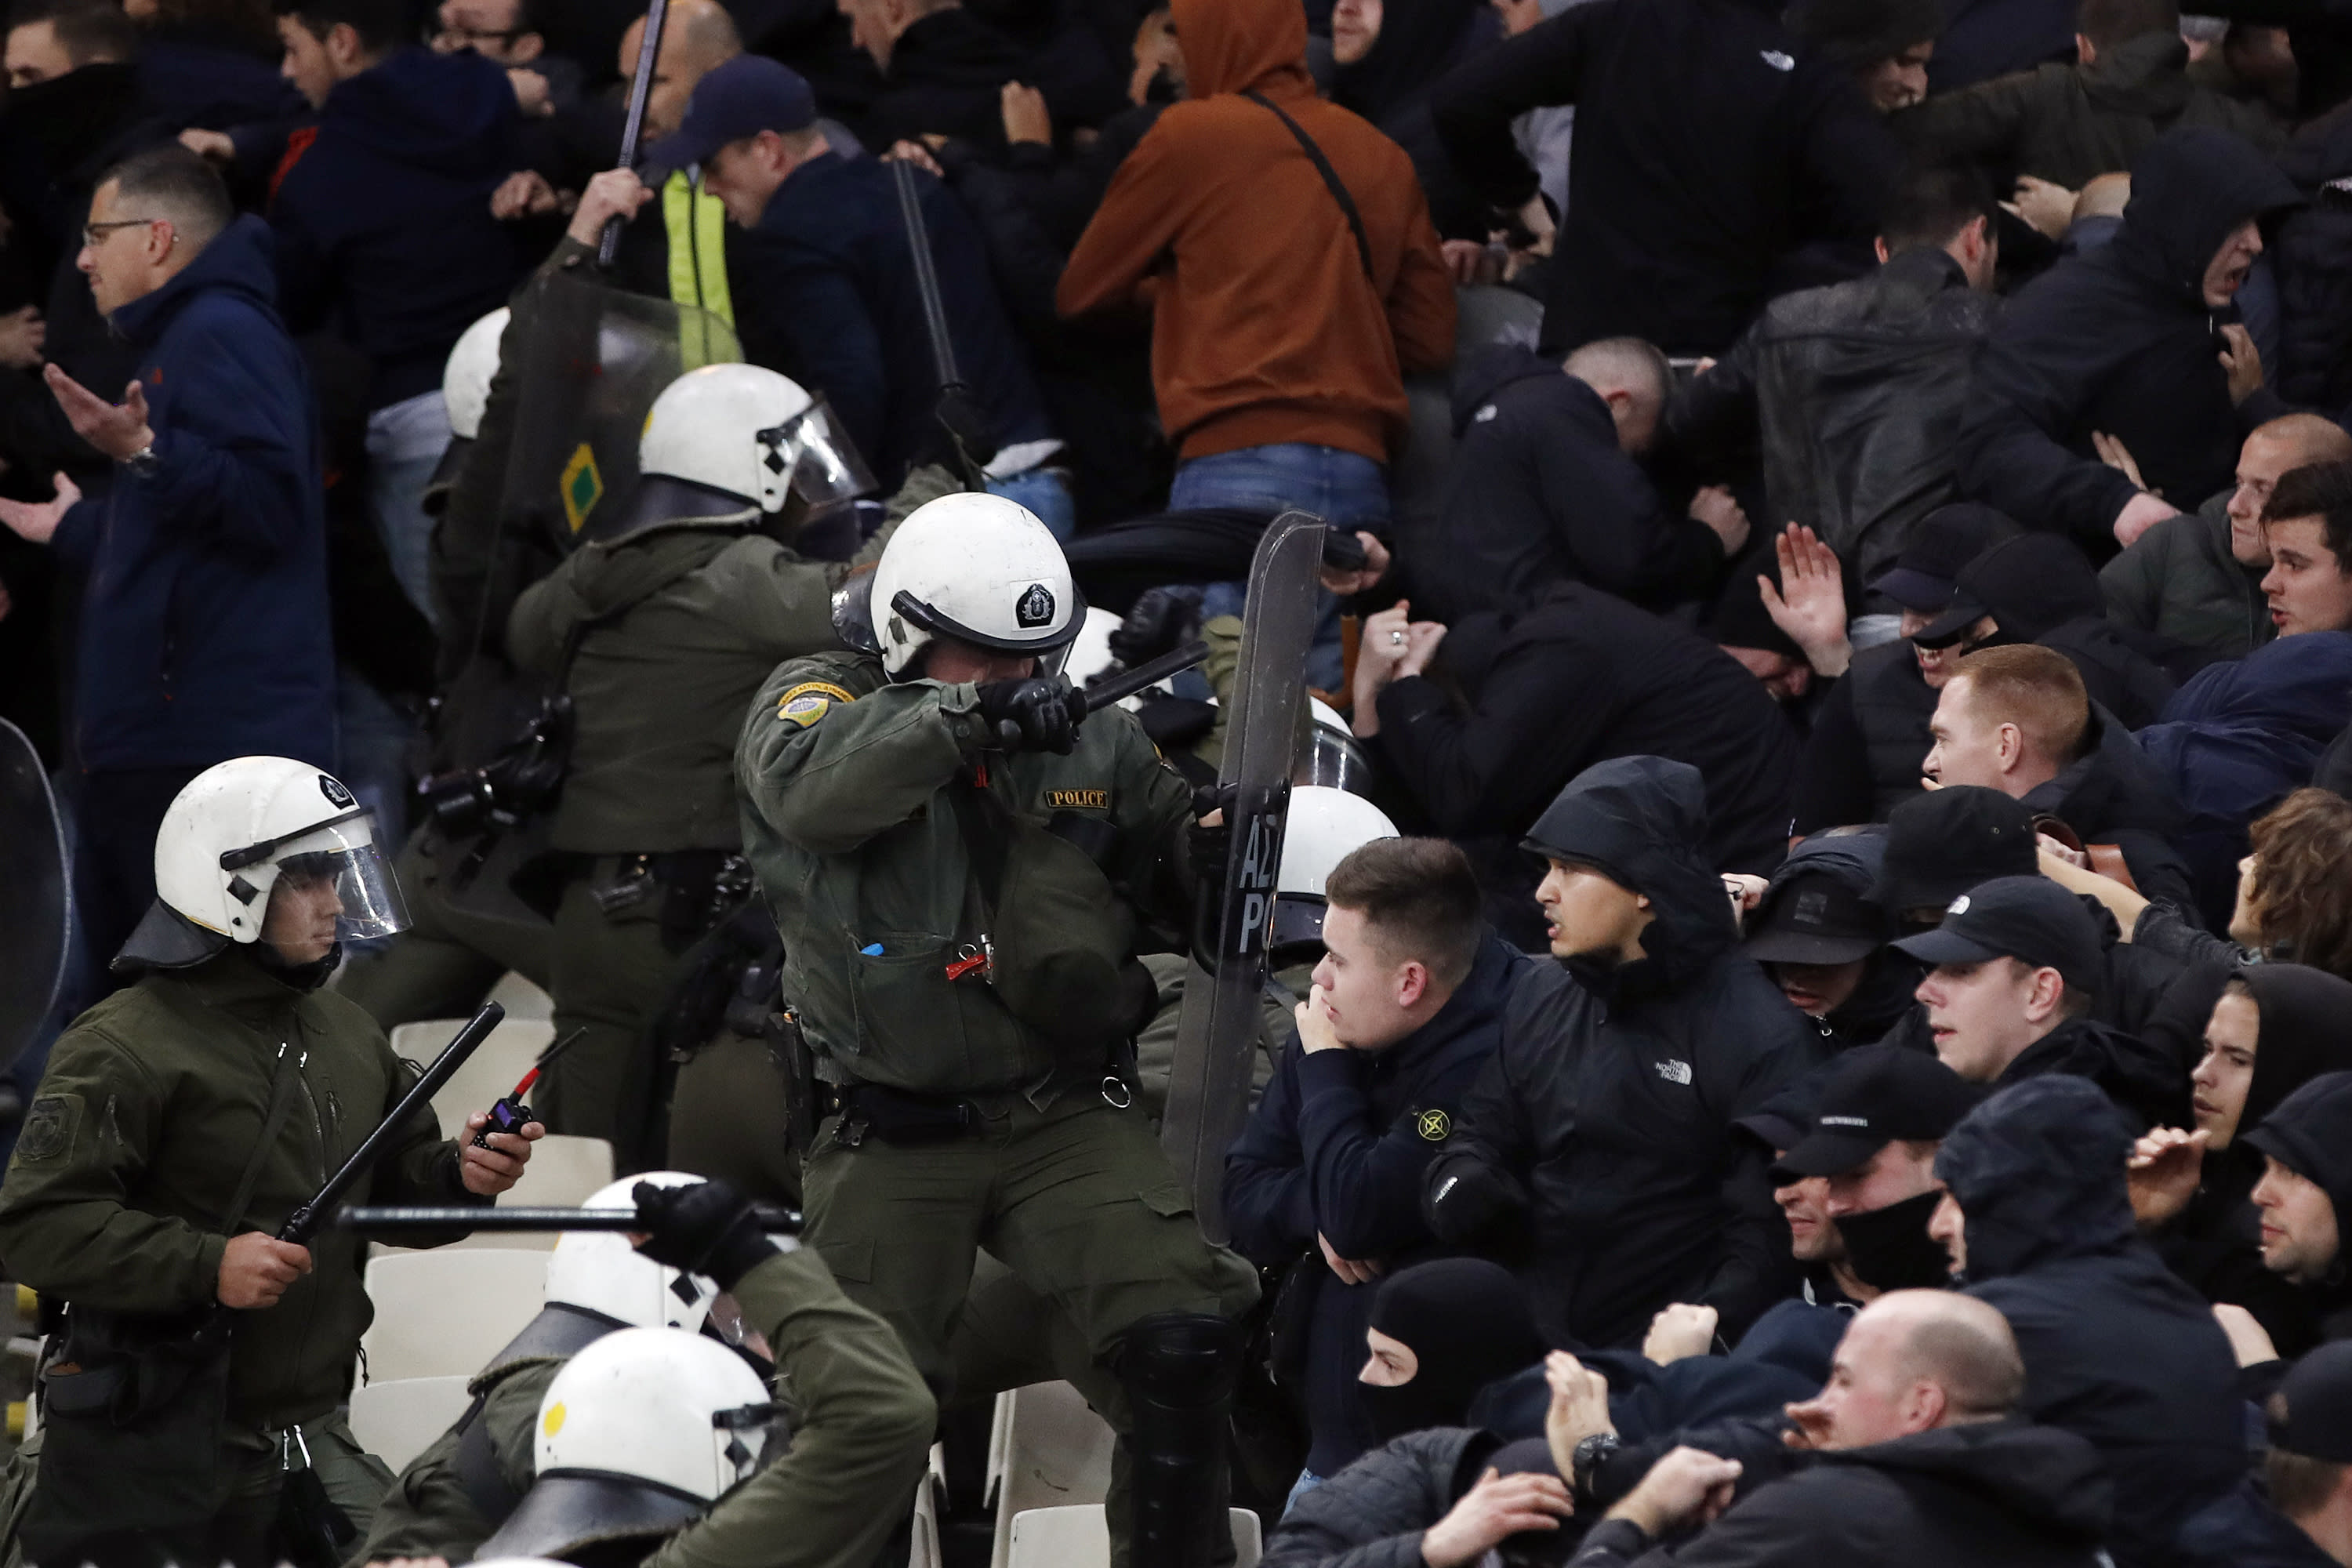 Greek riot police clash with Ajax fans before the start of a Group E Champions League soccer match between AEK Athens and Ajax at the Olympic Stadium in Athens, Tuesday, Nov. 27, 2018. (AP Photo/Thanassis Stavrakis)